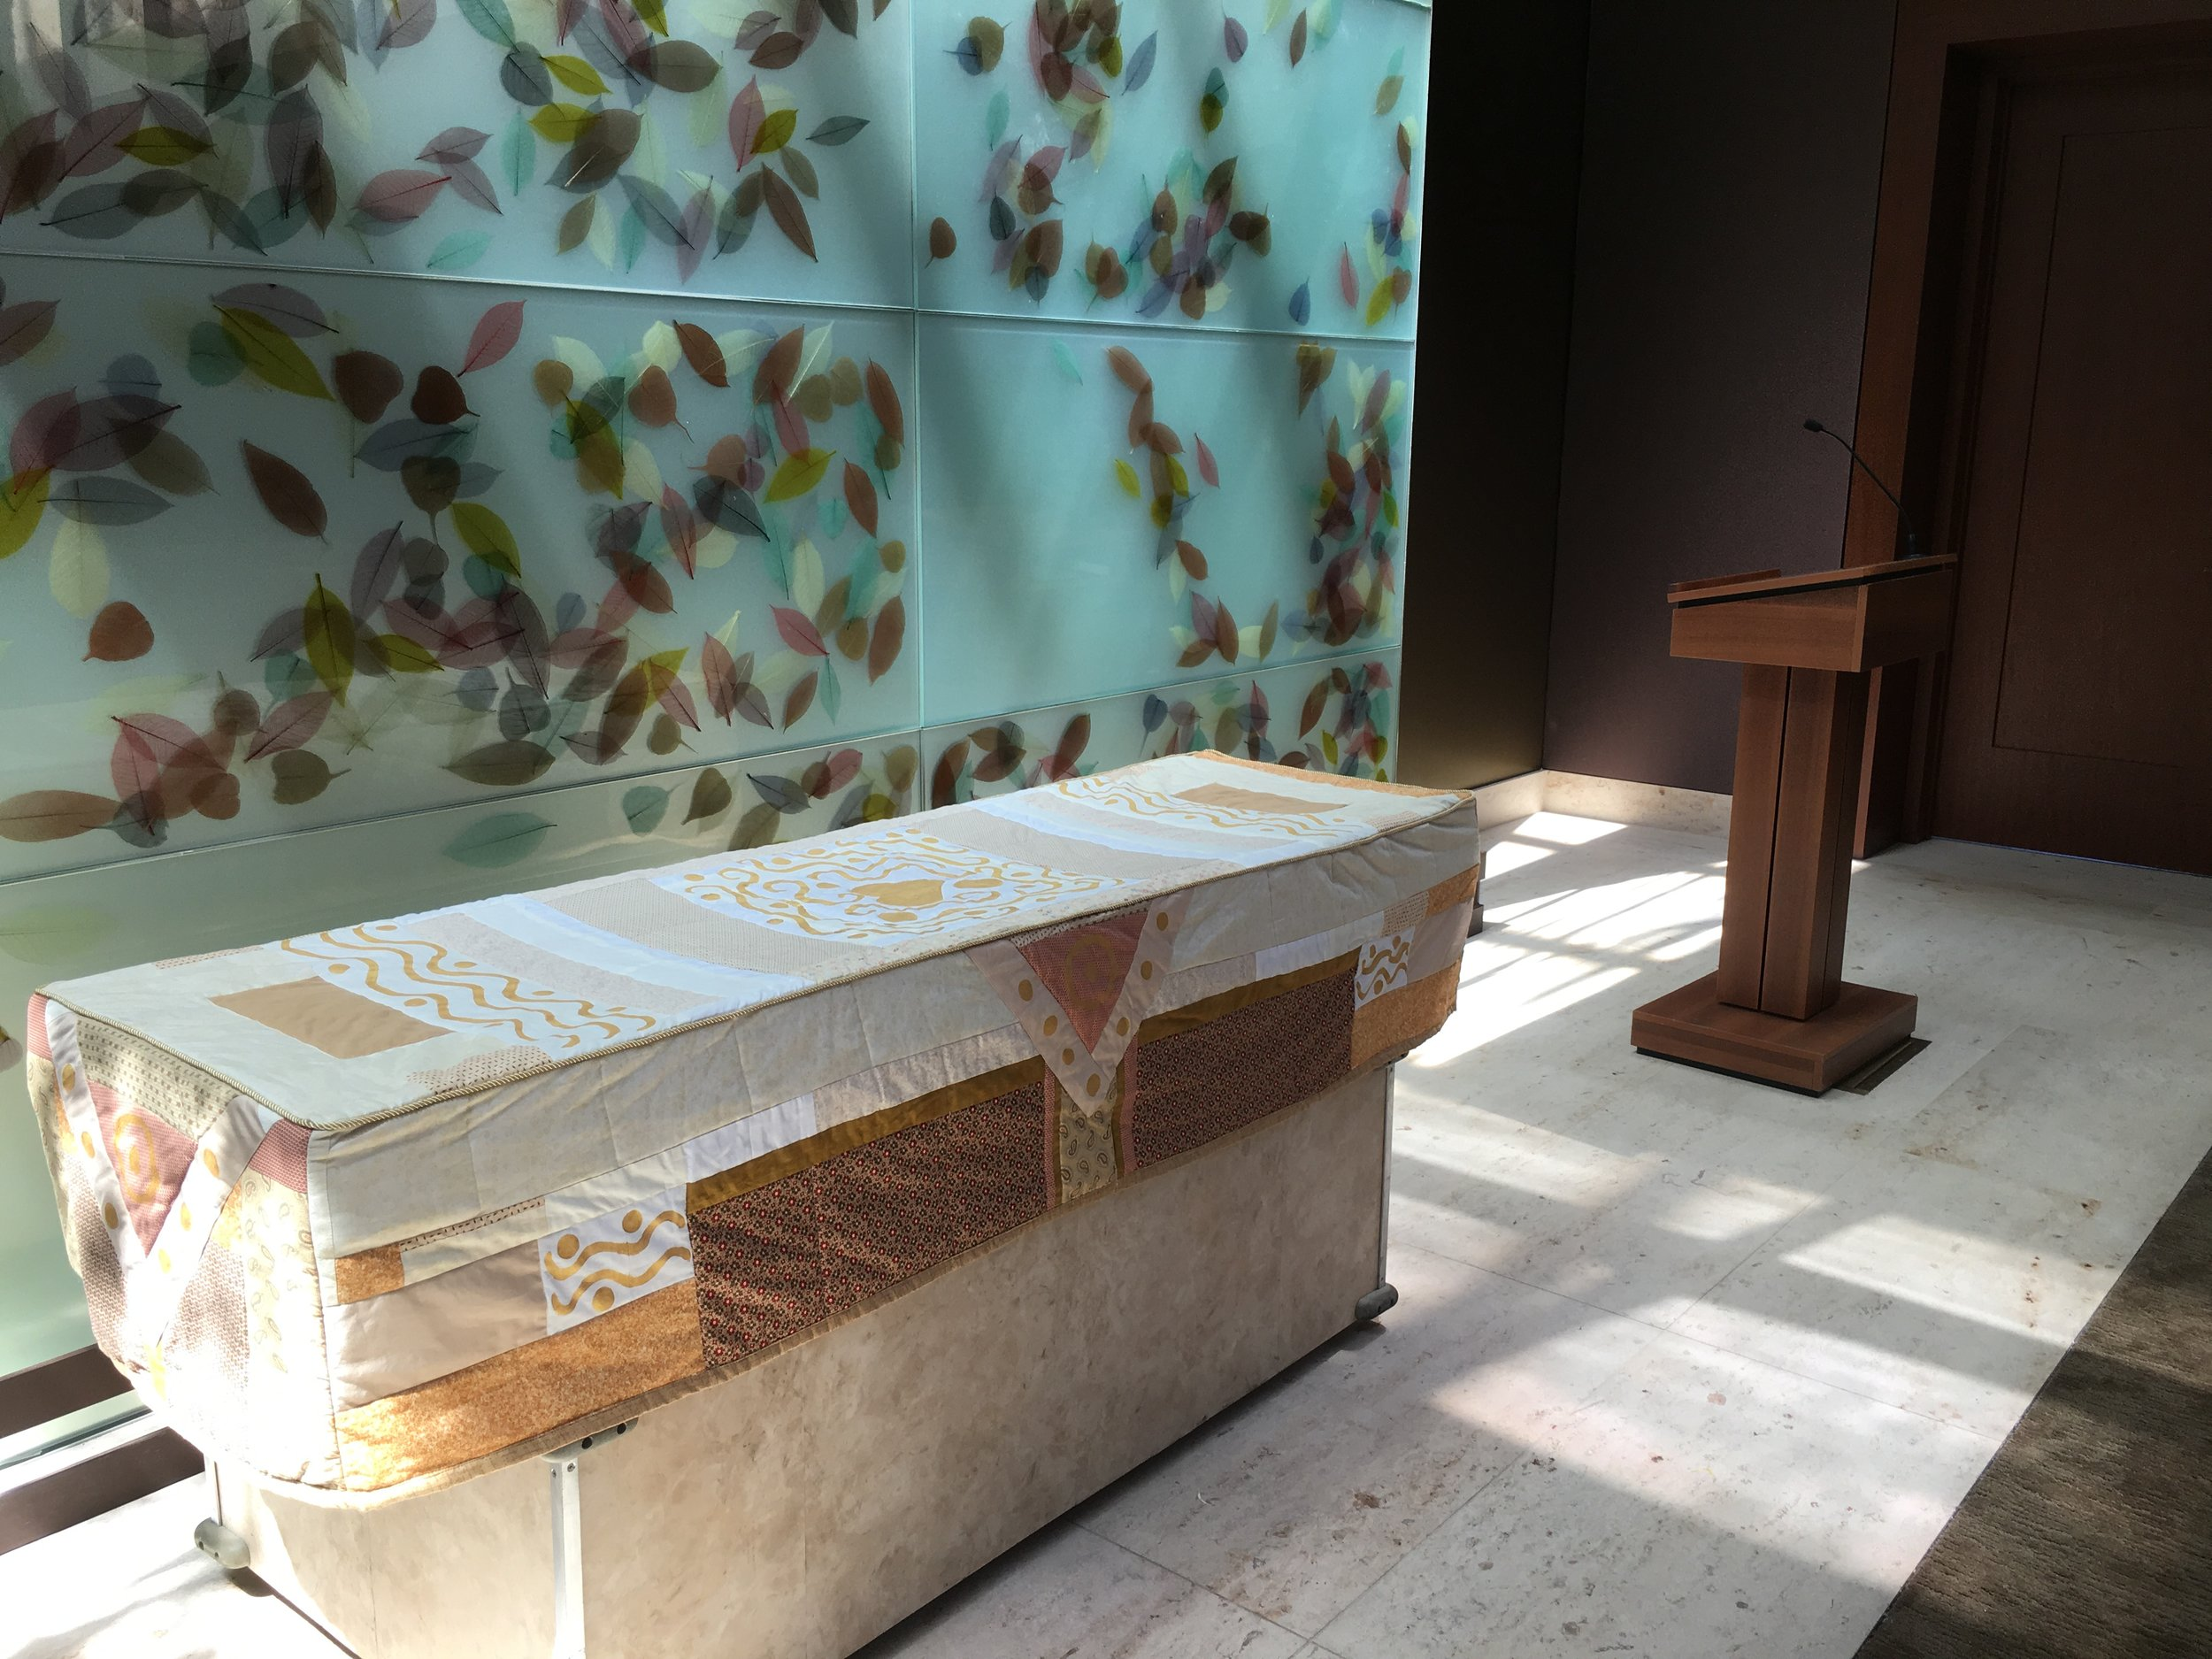 A simple cardboard casket can look like a million bucks with our pretty quilted cover made by Park Slope artist Louise Guerin. We'll help you think out the flowers that can go on top.